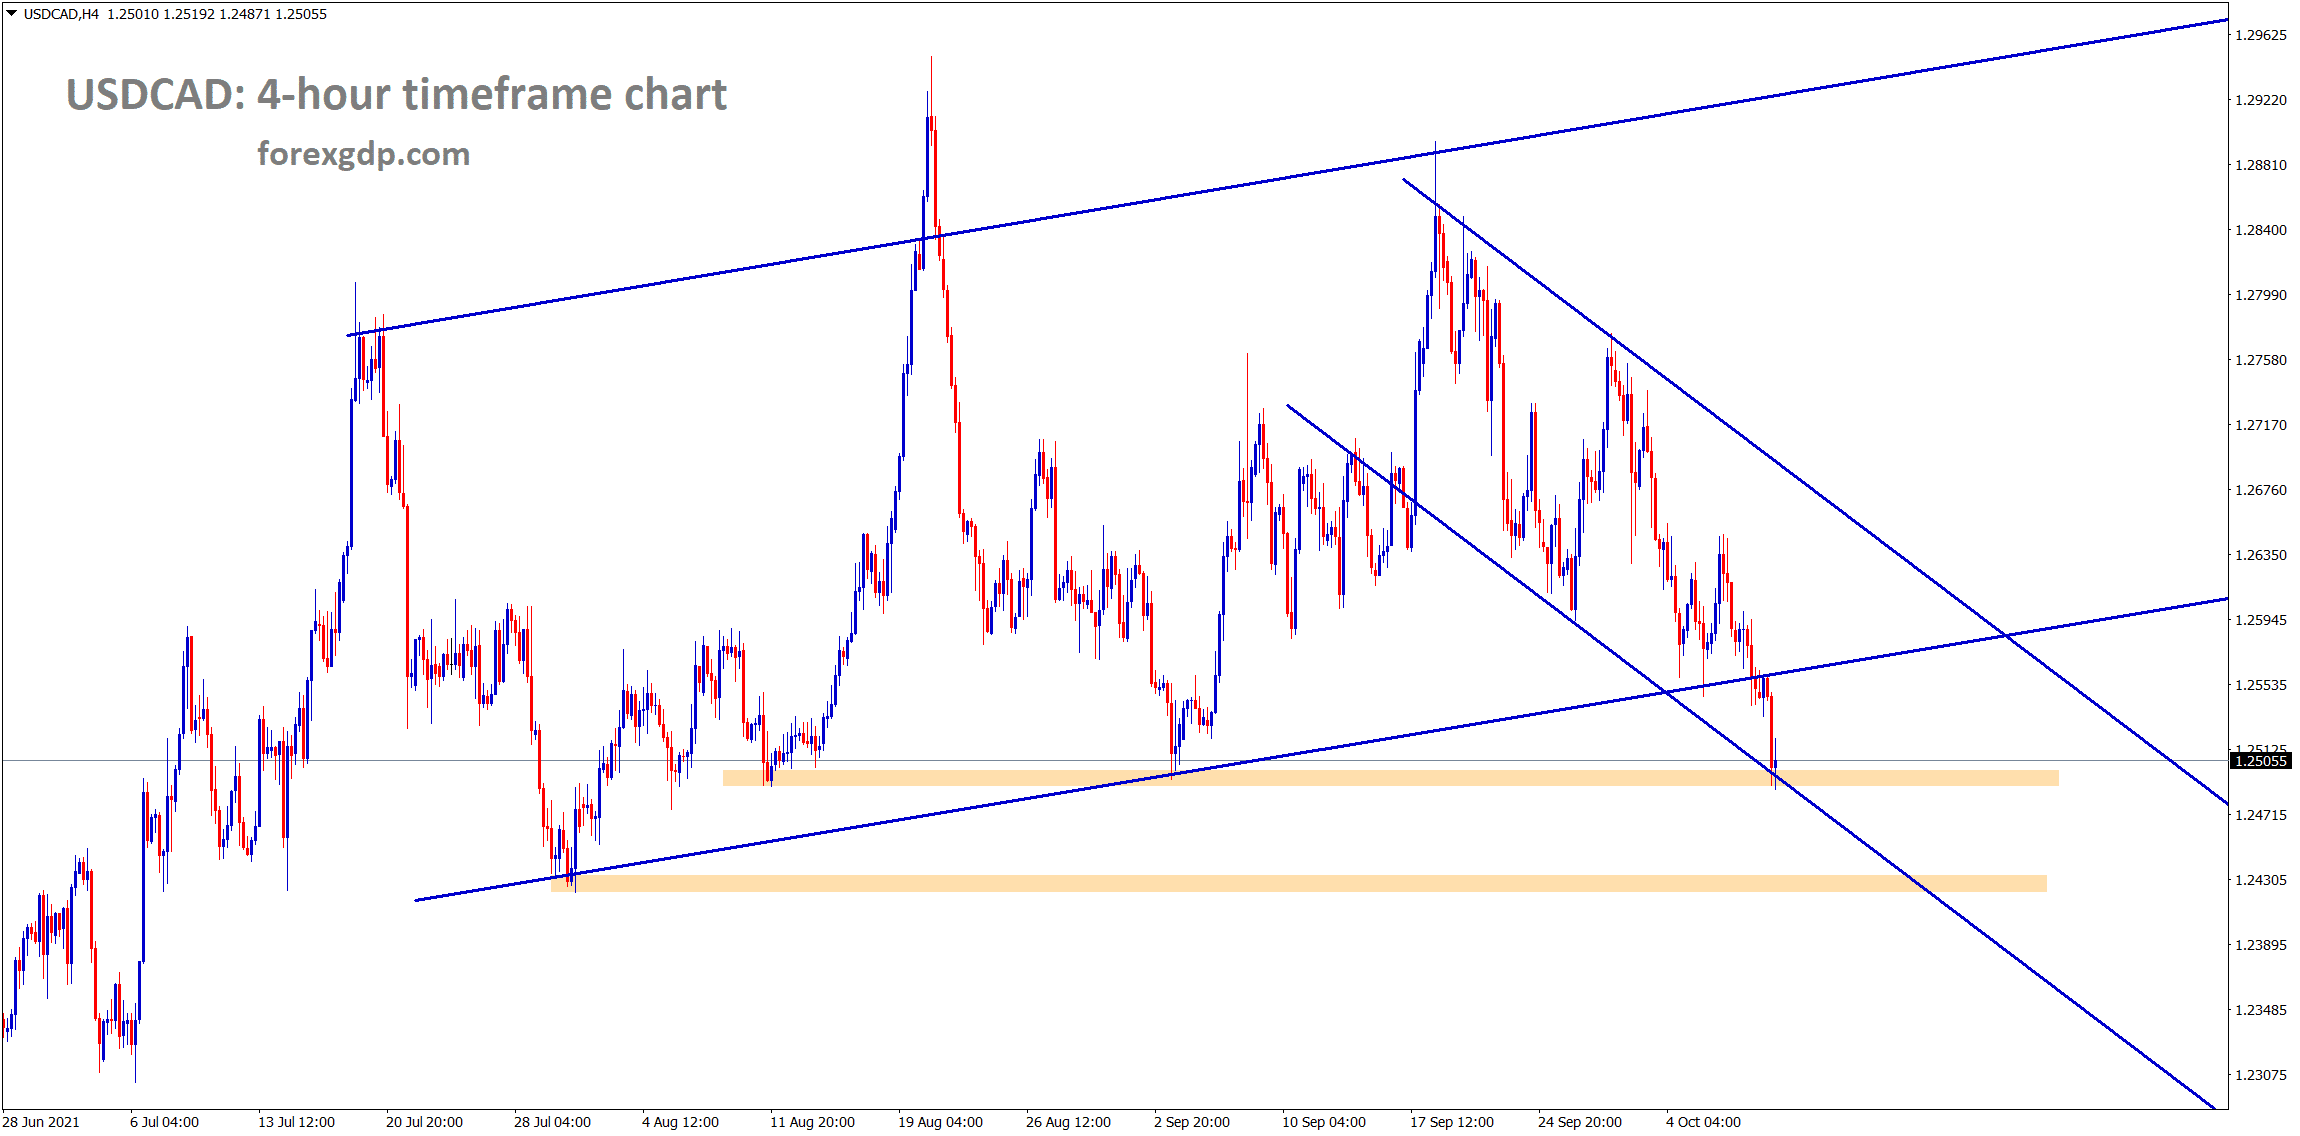 USDCAD has broken the higher low level of uptrend line however the market has reached the horizontal support and the lower low area of the descending channel